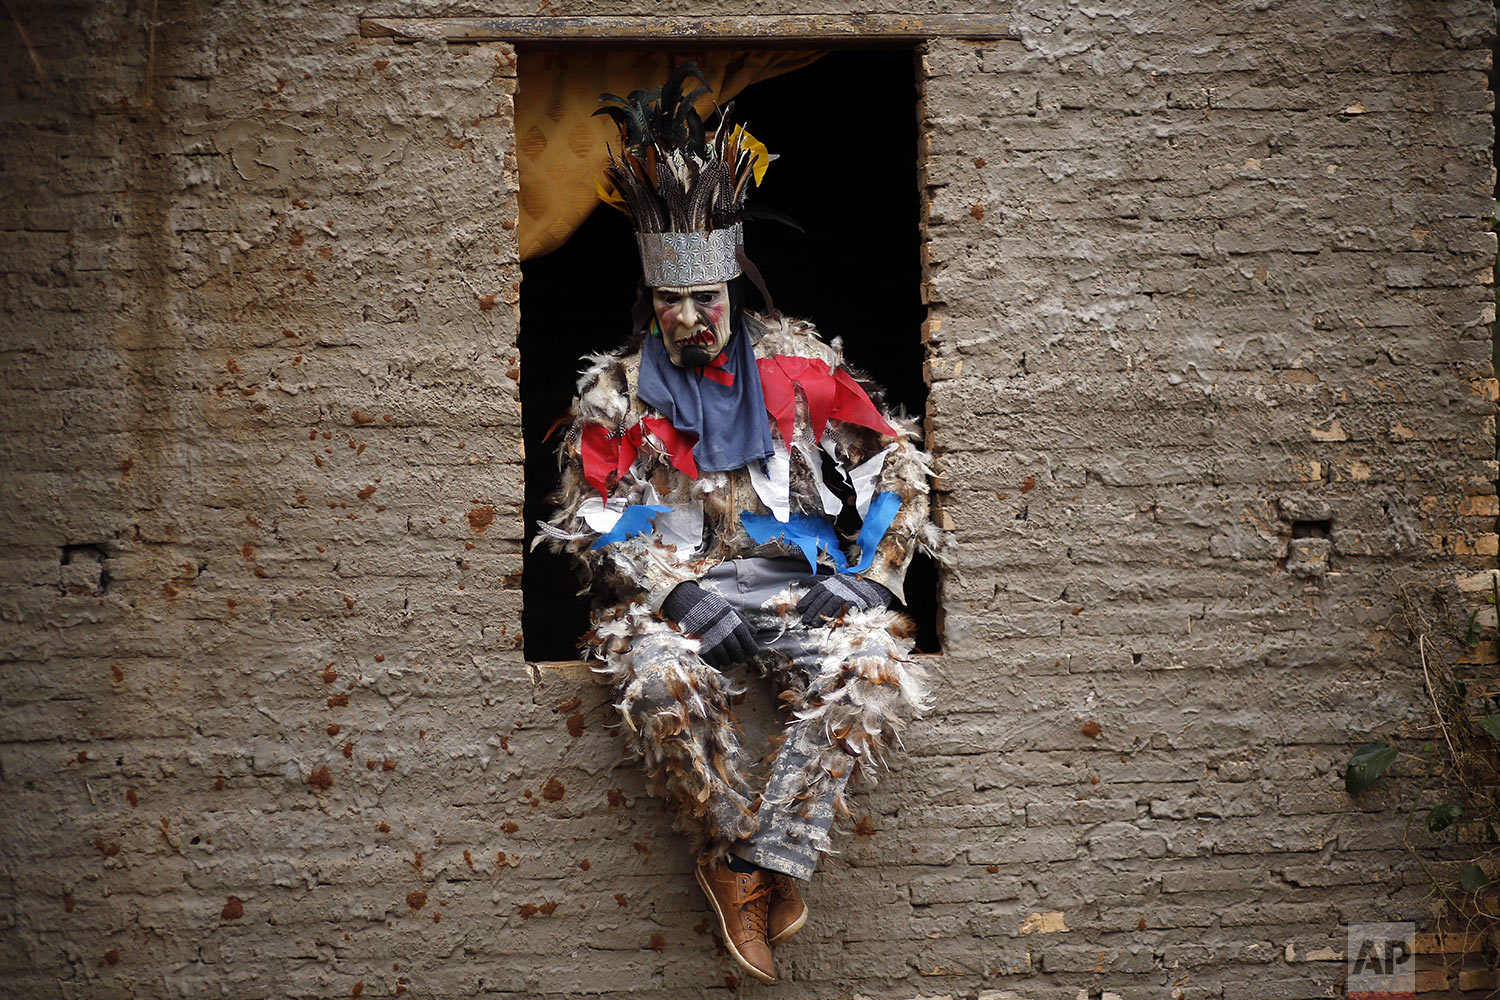 Farmer Genaro Servin sits on a window ledge in his feathered costume during the feast of St. Francis Solano in Emboscada, Paraguay, Wednesday, July 24, 2019. (AP Photo/Jorge Saenz)